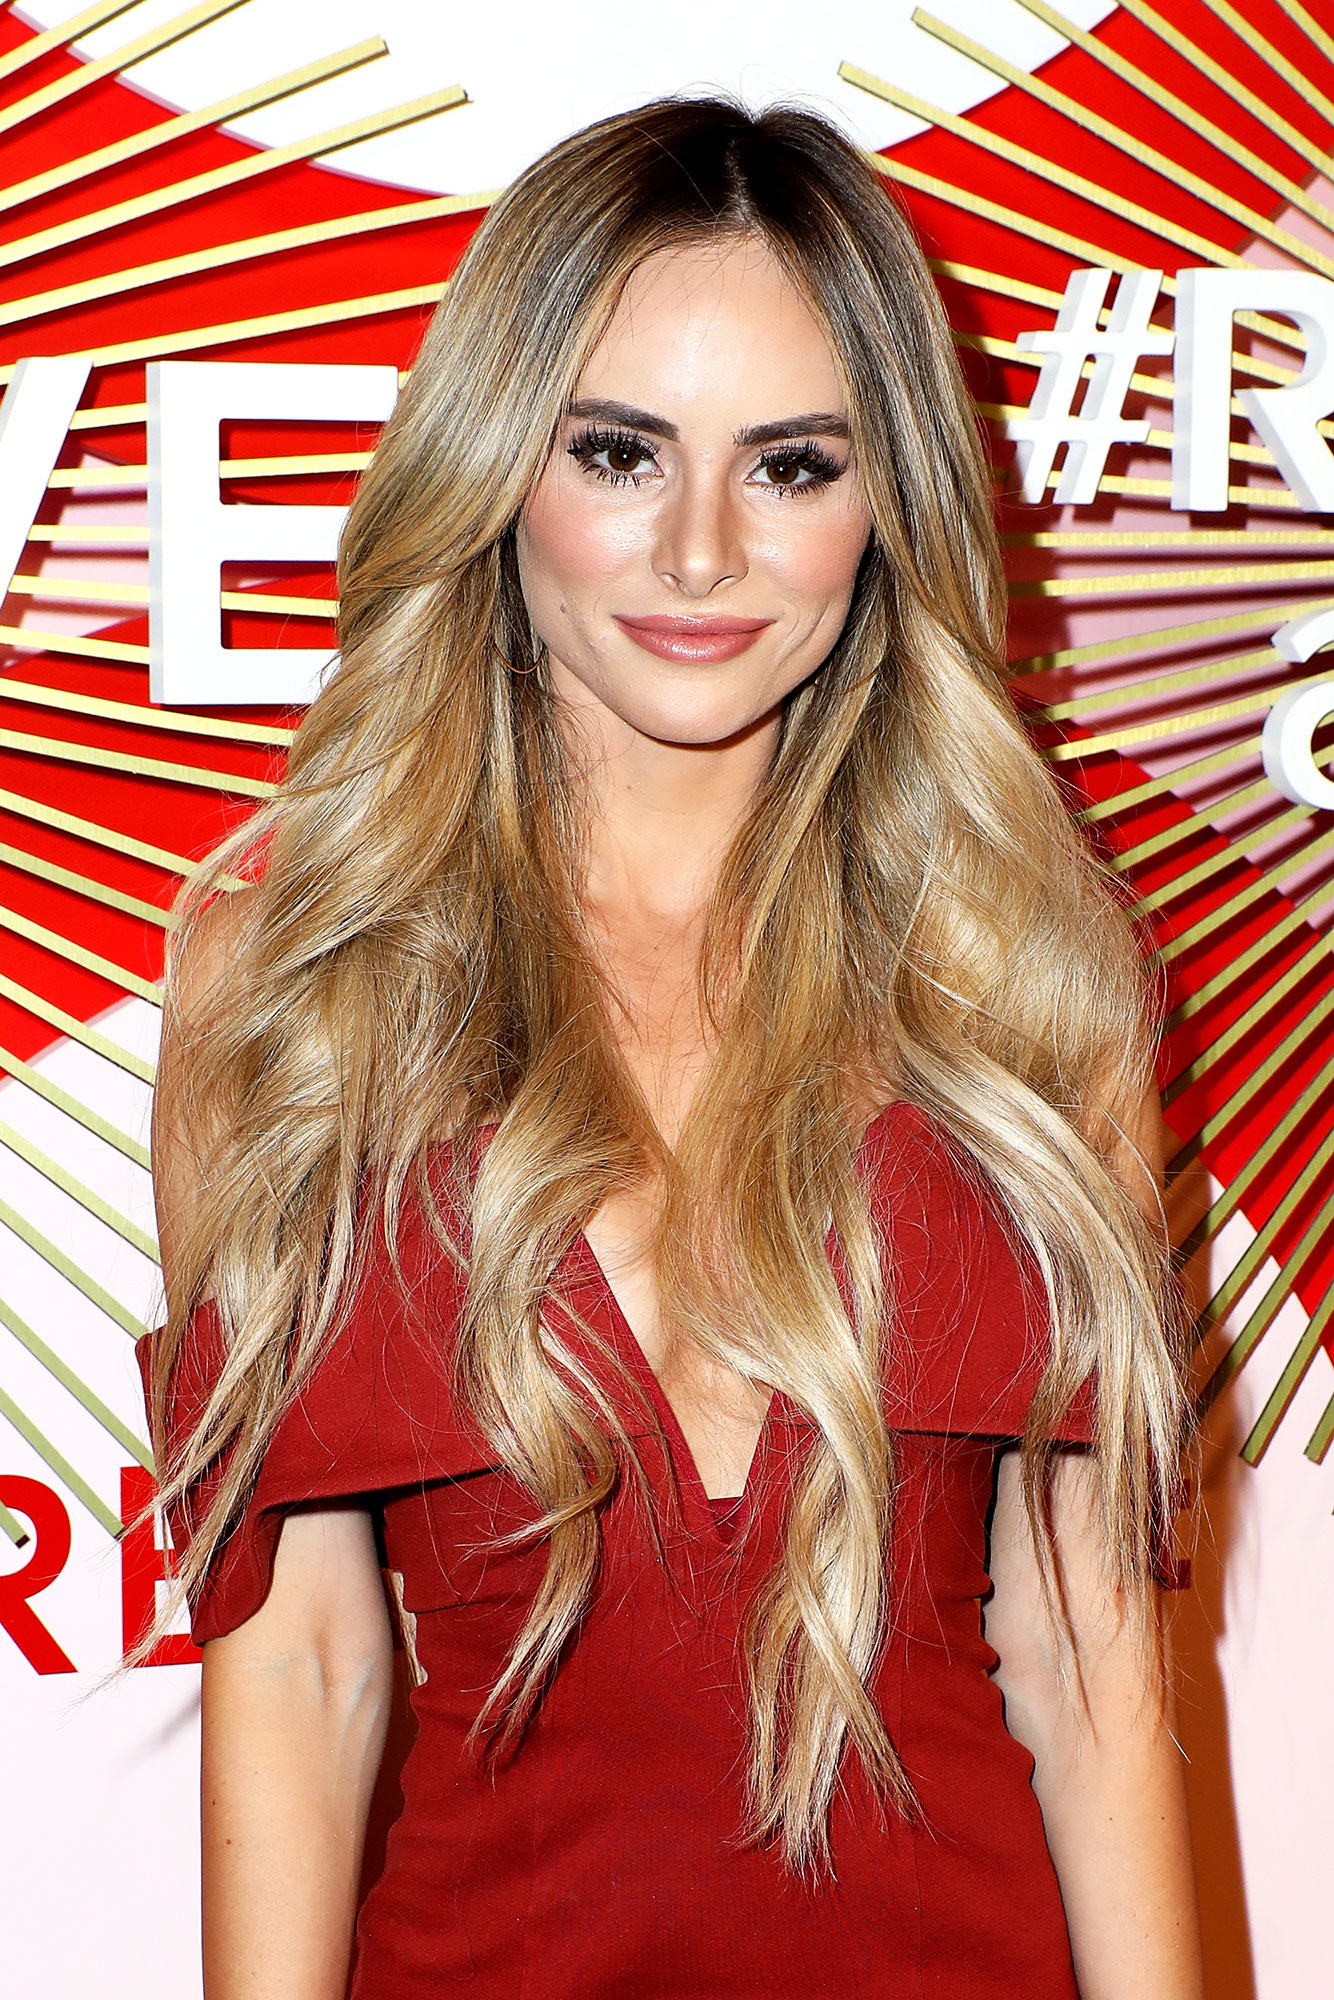 """Amanda Stanton - The Bachelor in Paradise alum clapped back at body shamers who criticized her slim physique on a before-and-after workout post. """" I do not have an eating disorder and am naturally skinny,"""" she wrote on Instagram Stories in December 2018."""